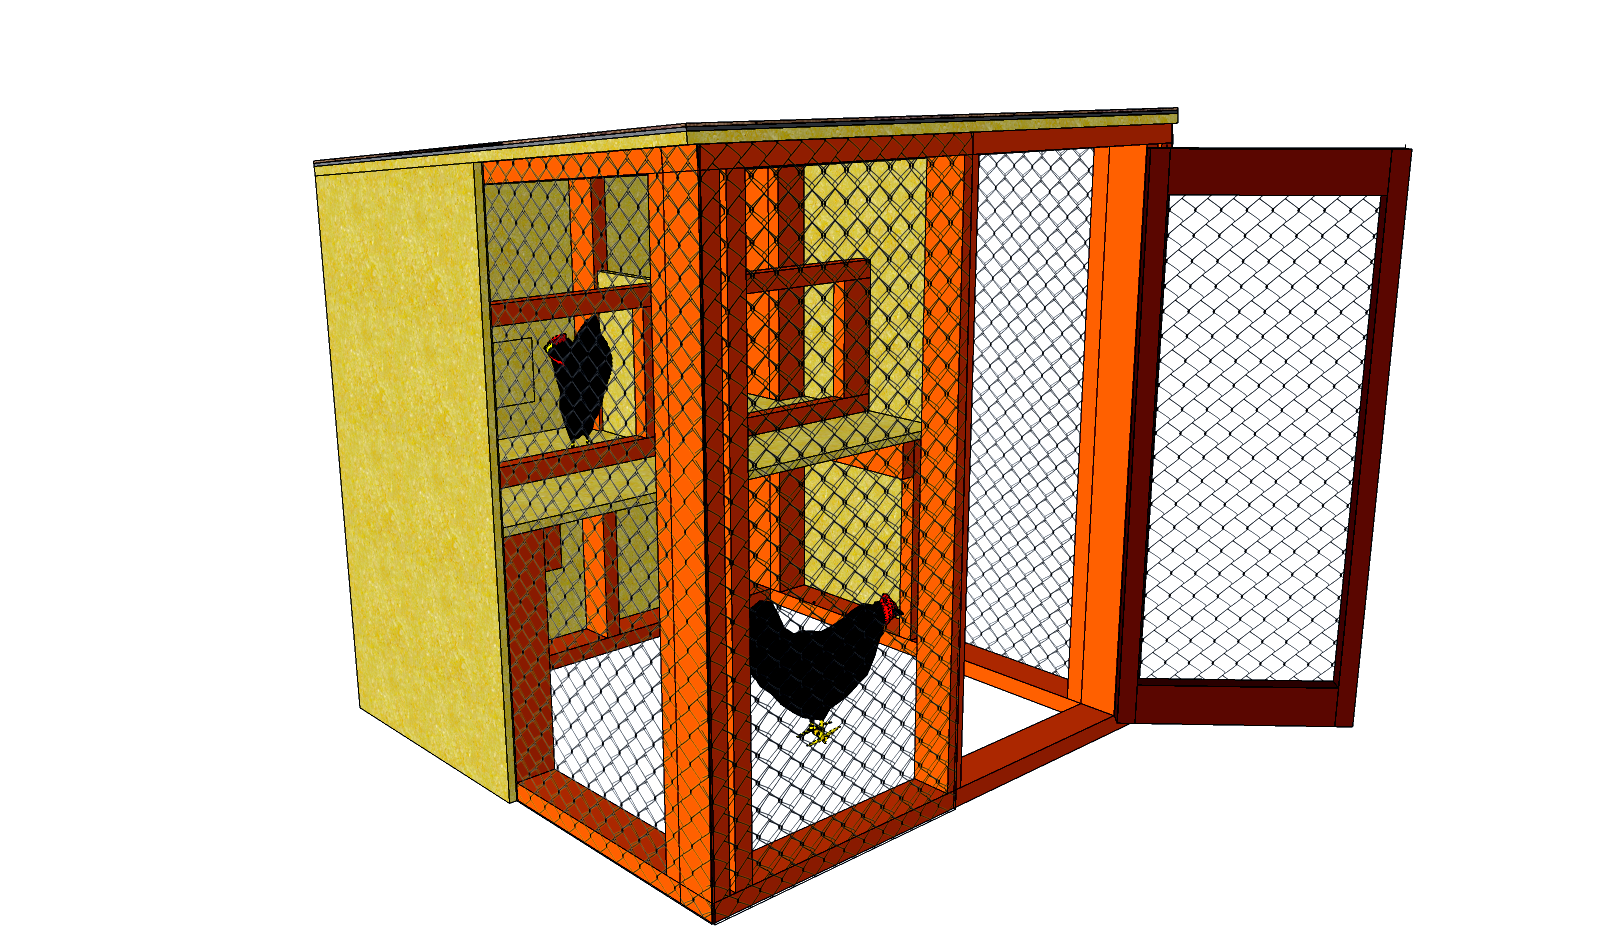 Simple chicken house plans Time                 One Weekend                    Related